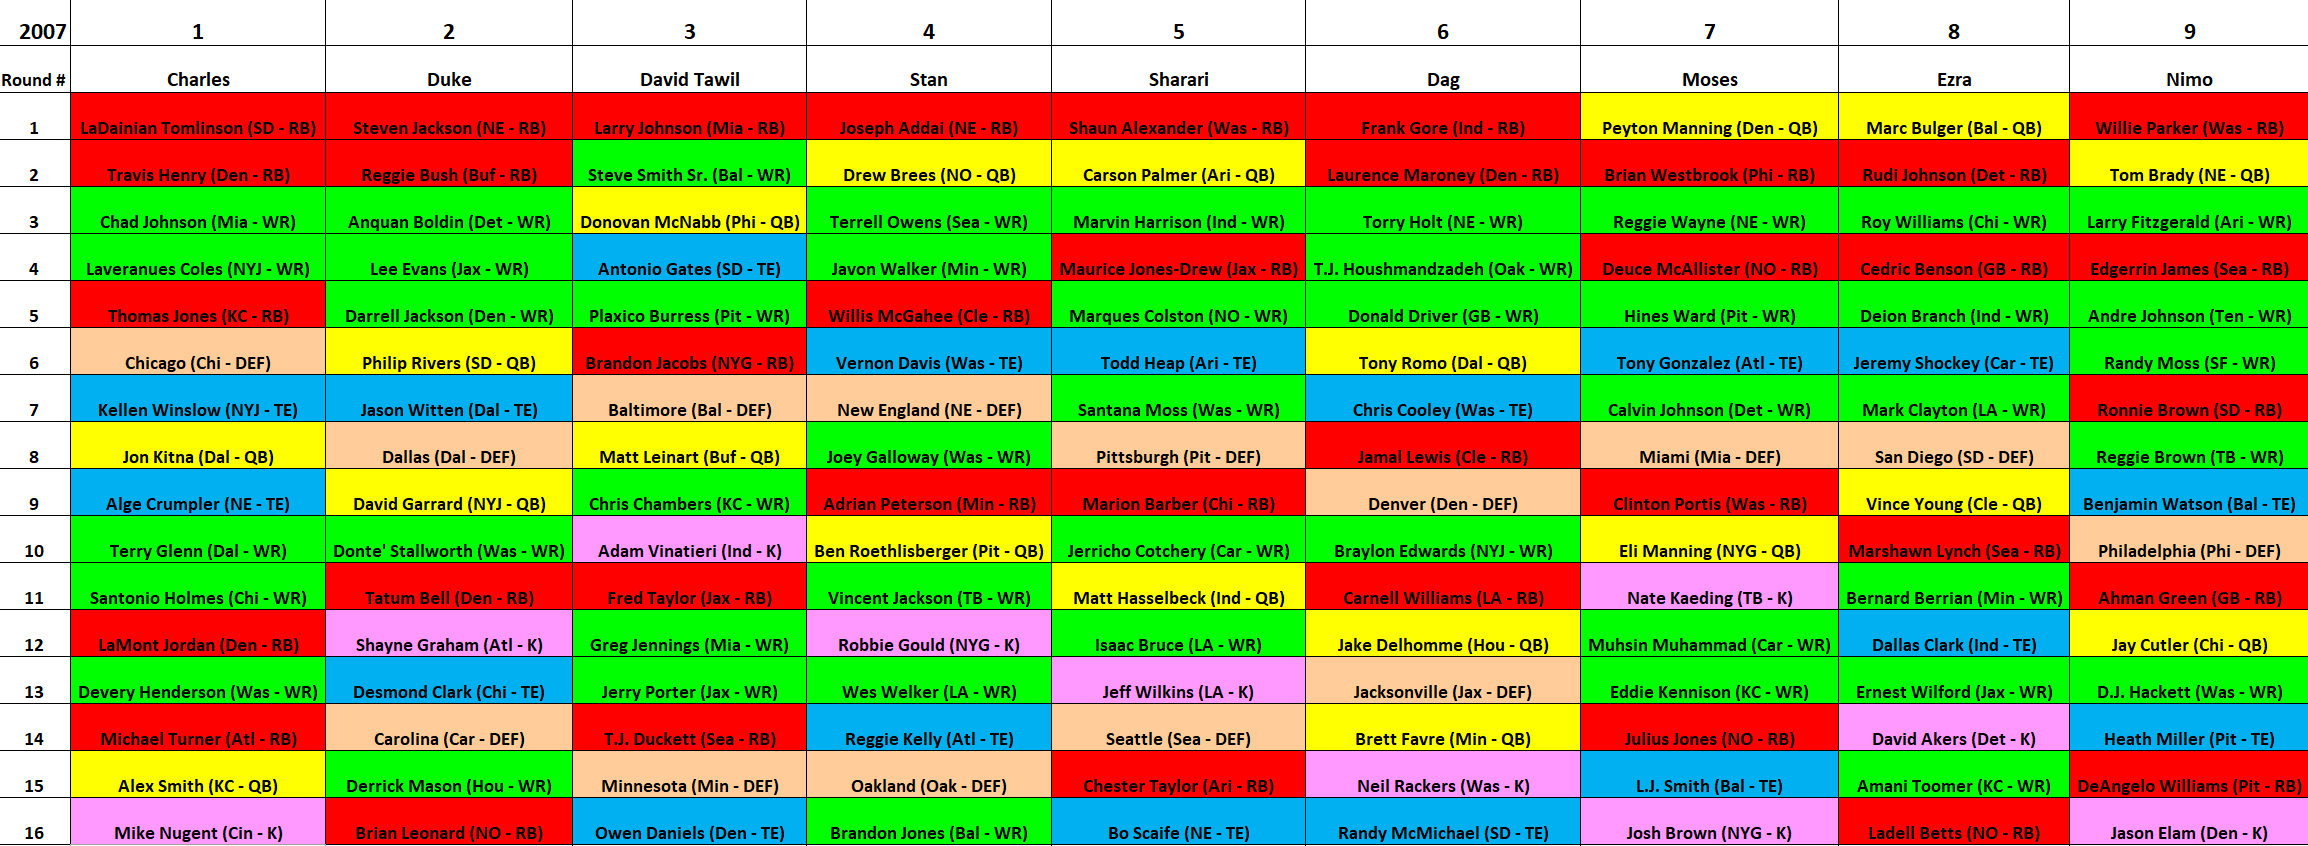 2007 MAZZA LEAGUE DRAFT BOARD - YEAR 1